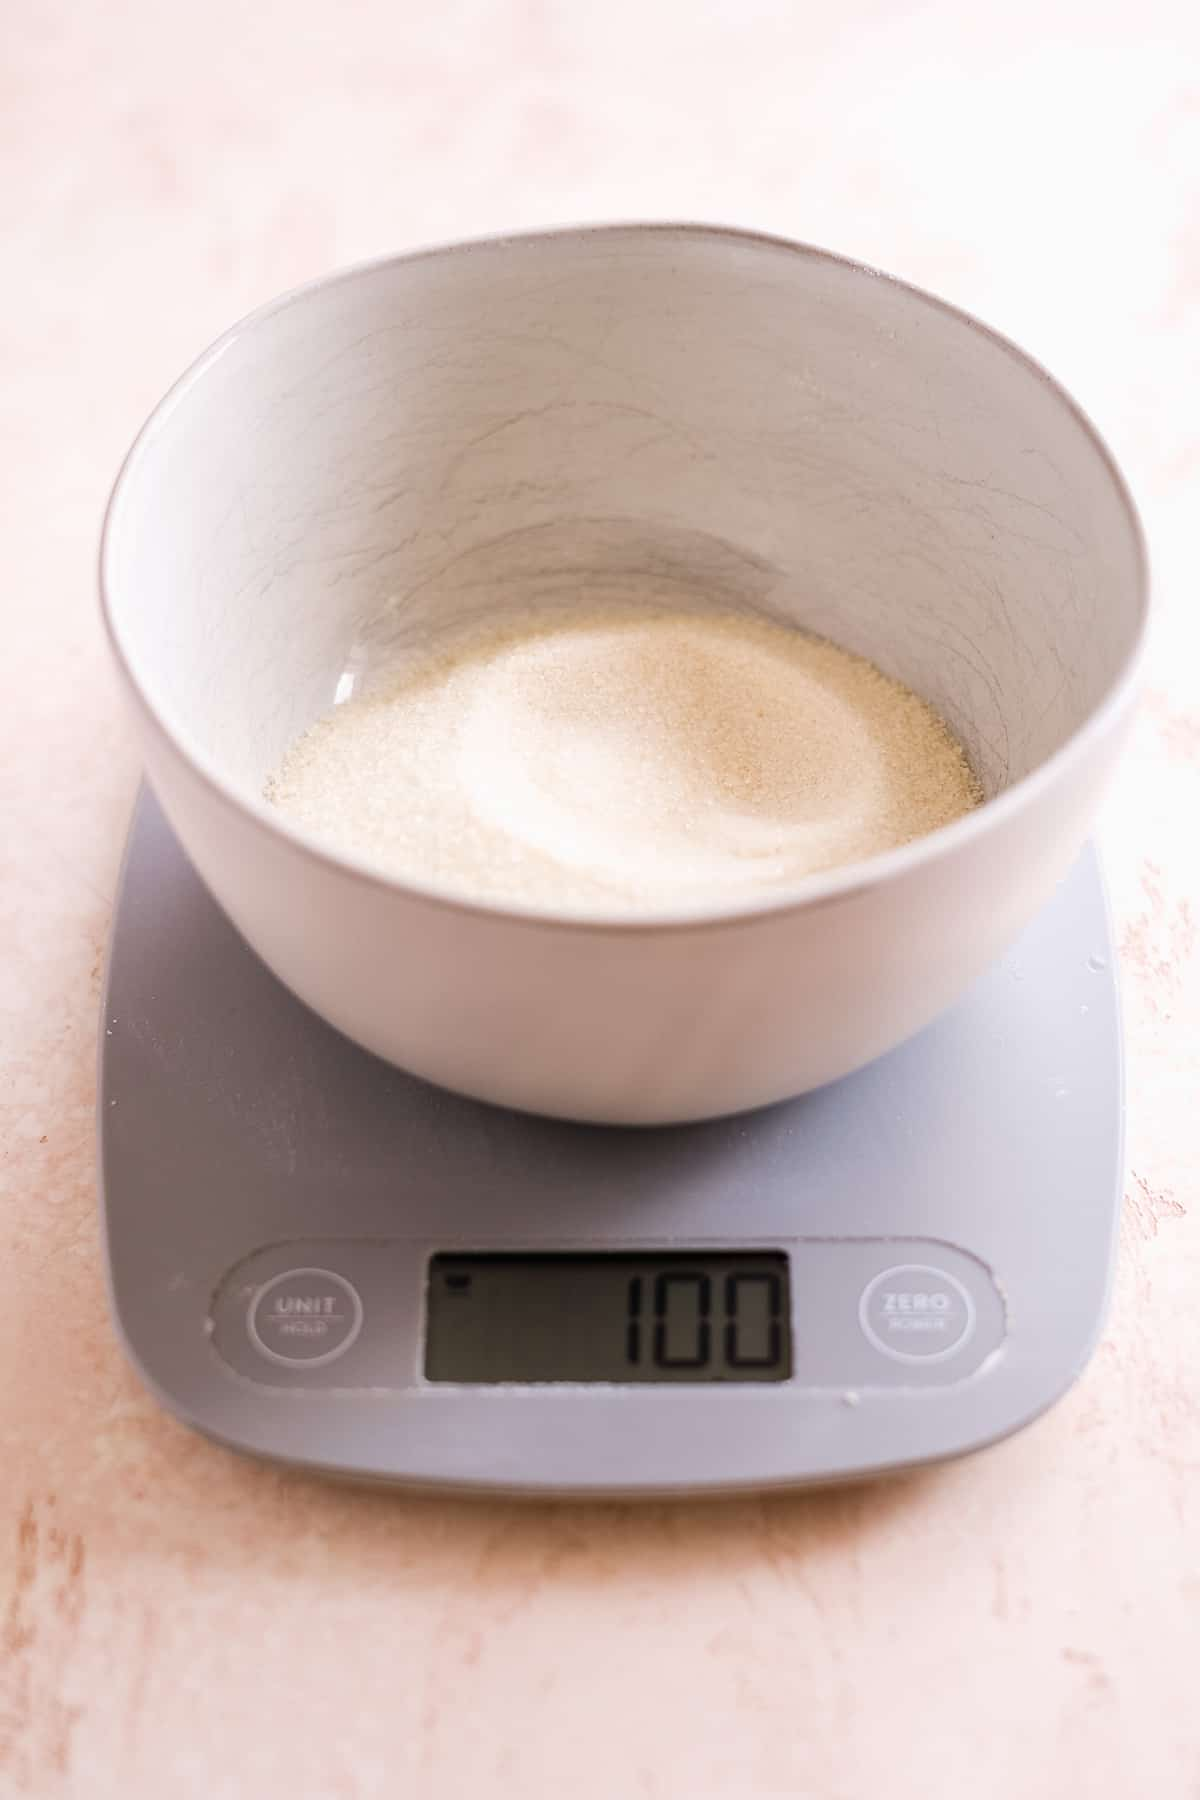 Bowl of sugar on a kitchen scale.